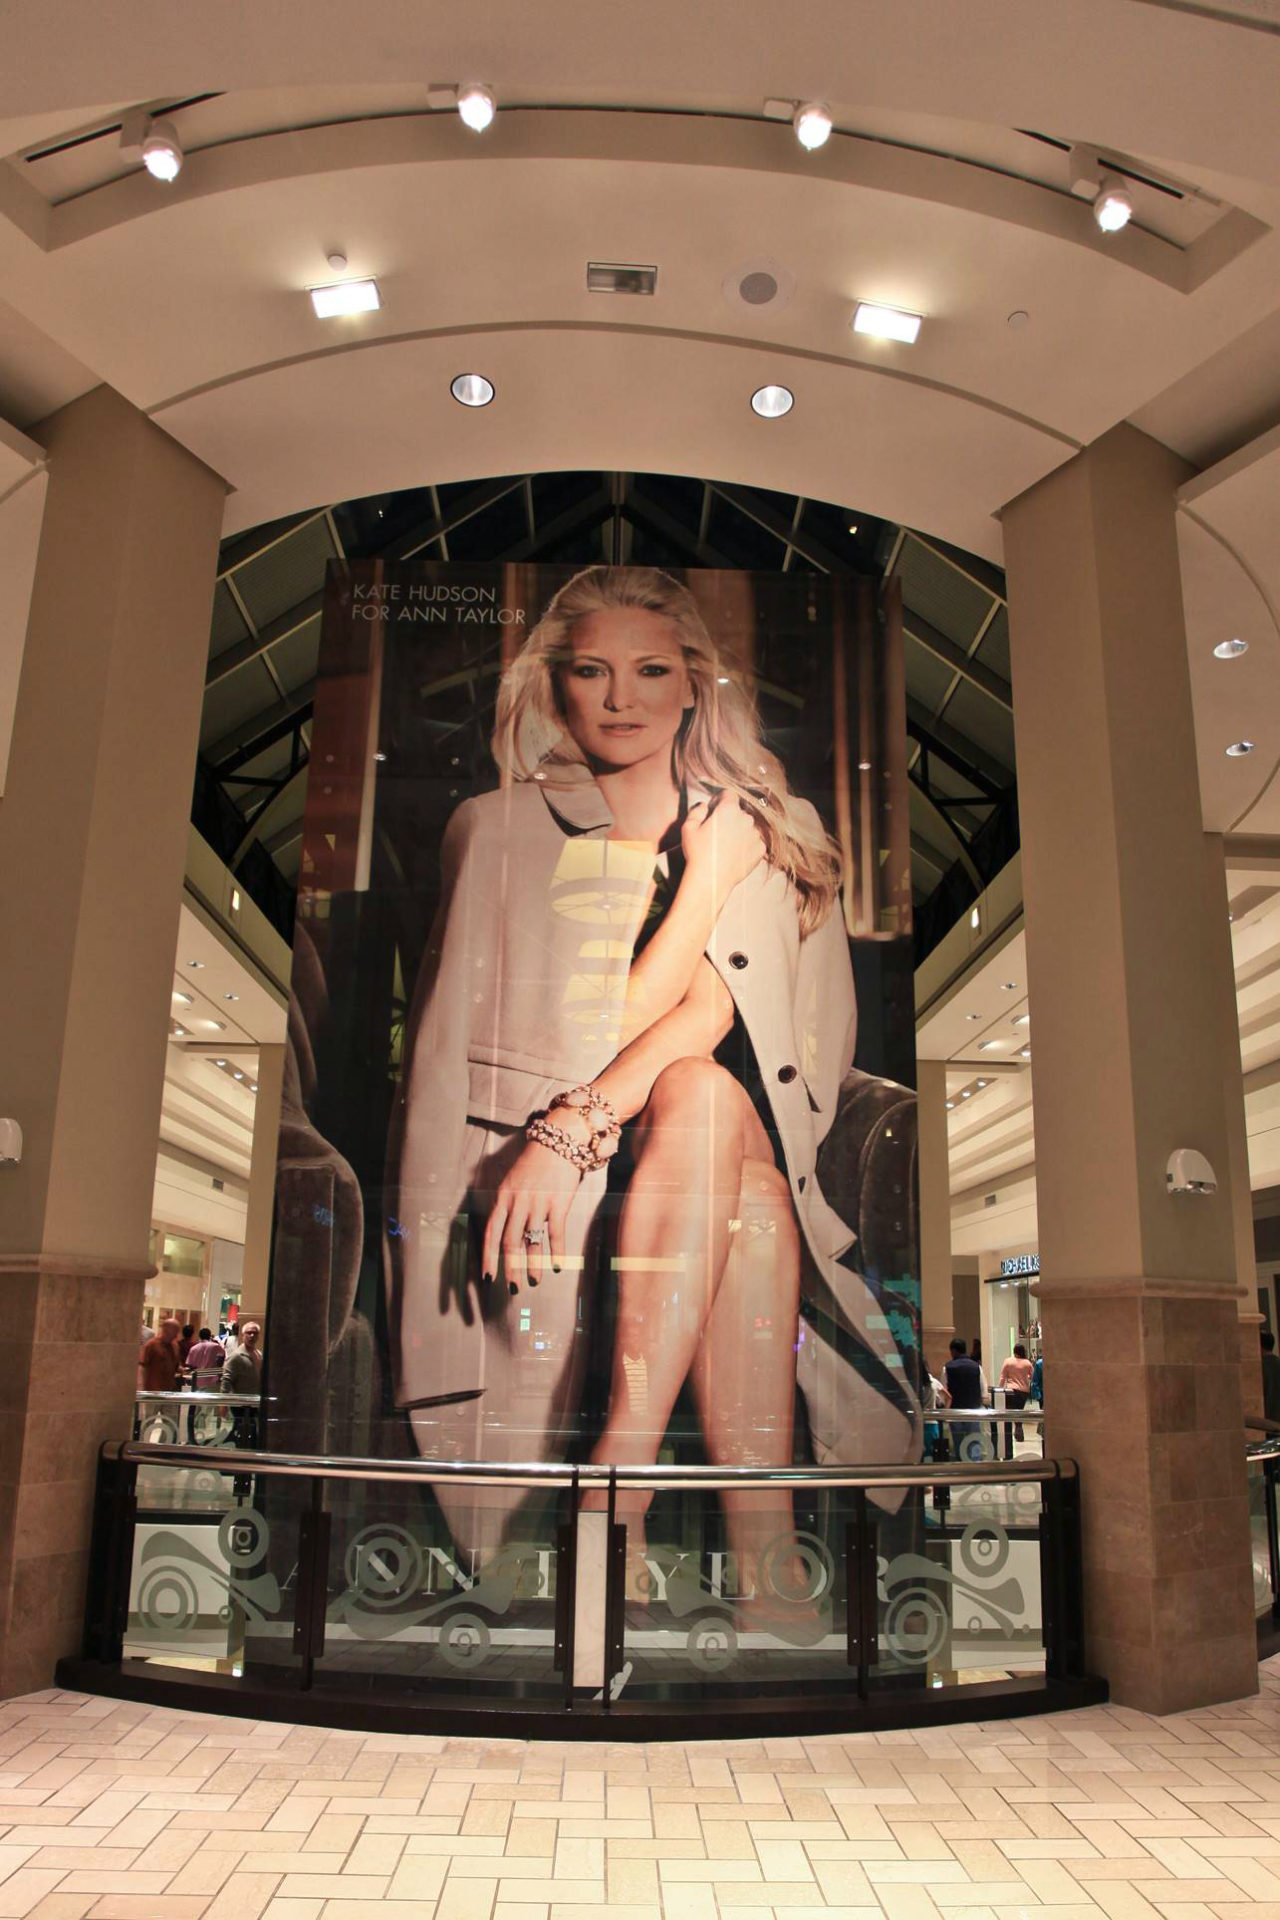 kate-hudson-lift-graphics-usa-see-through-window-graphics